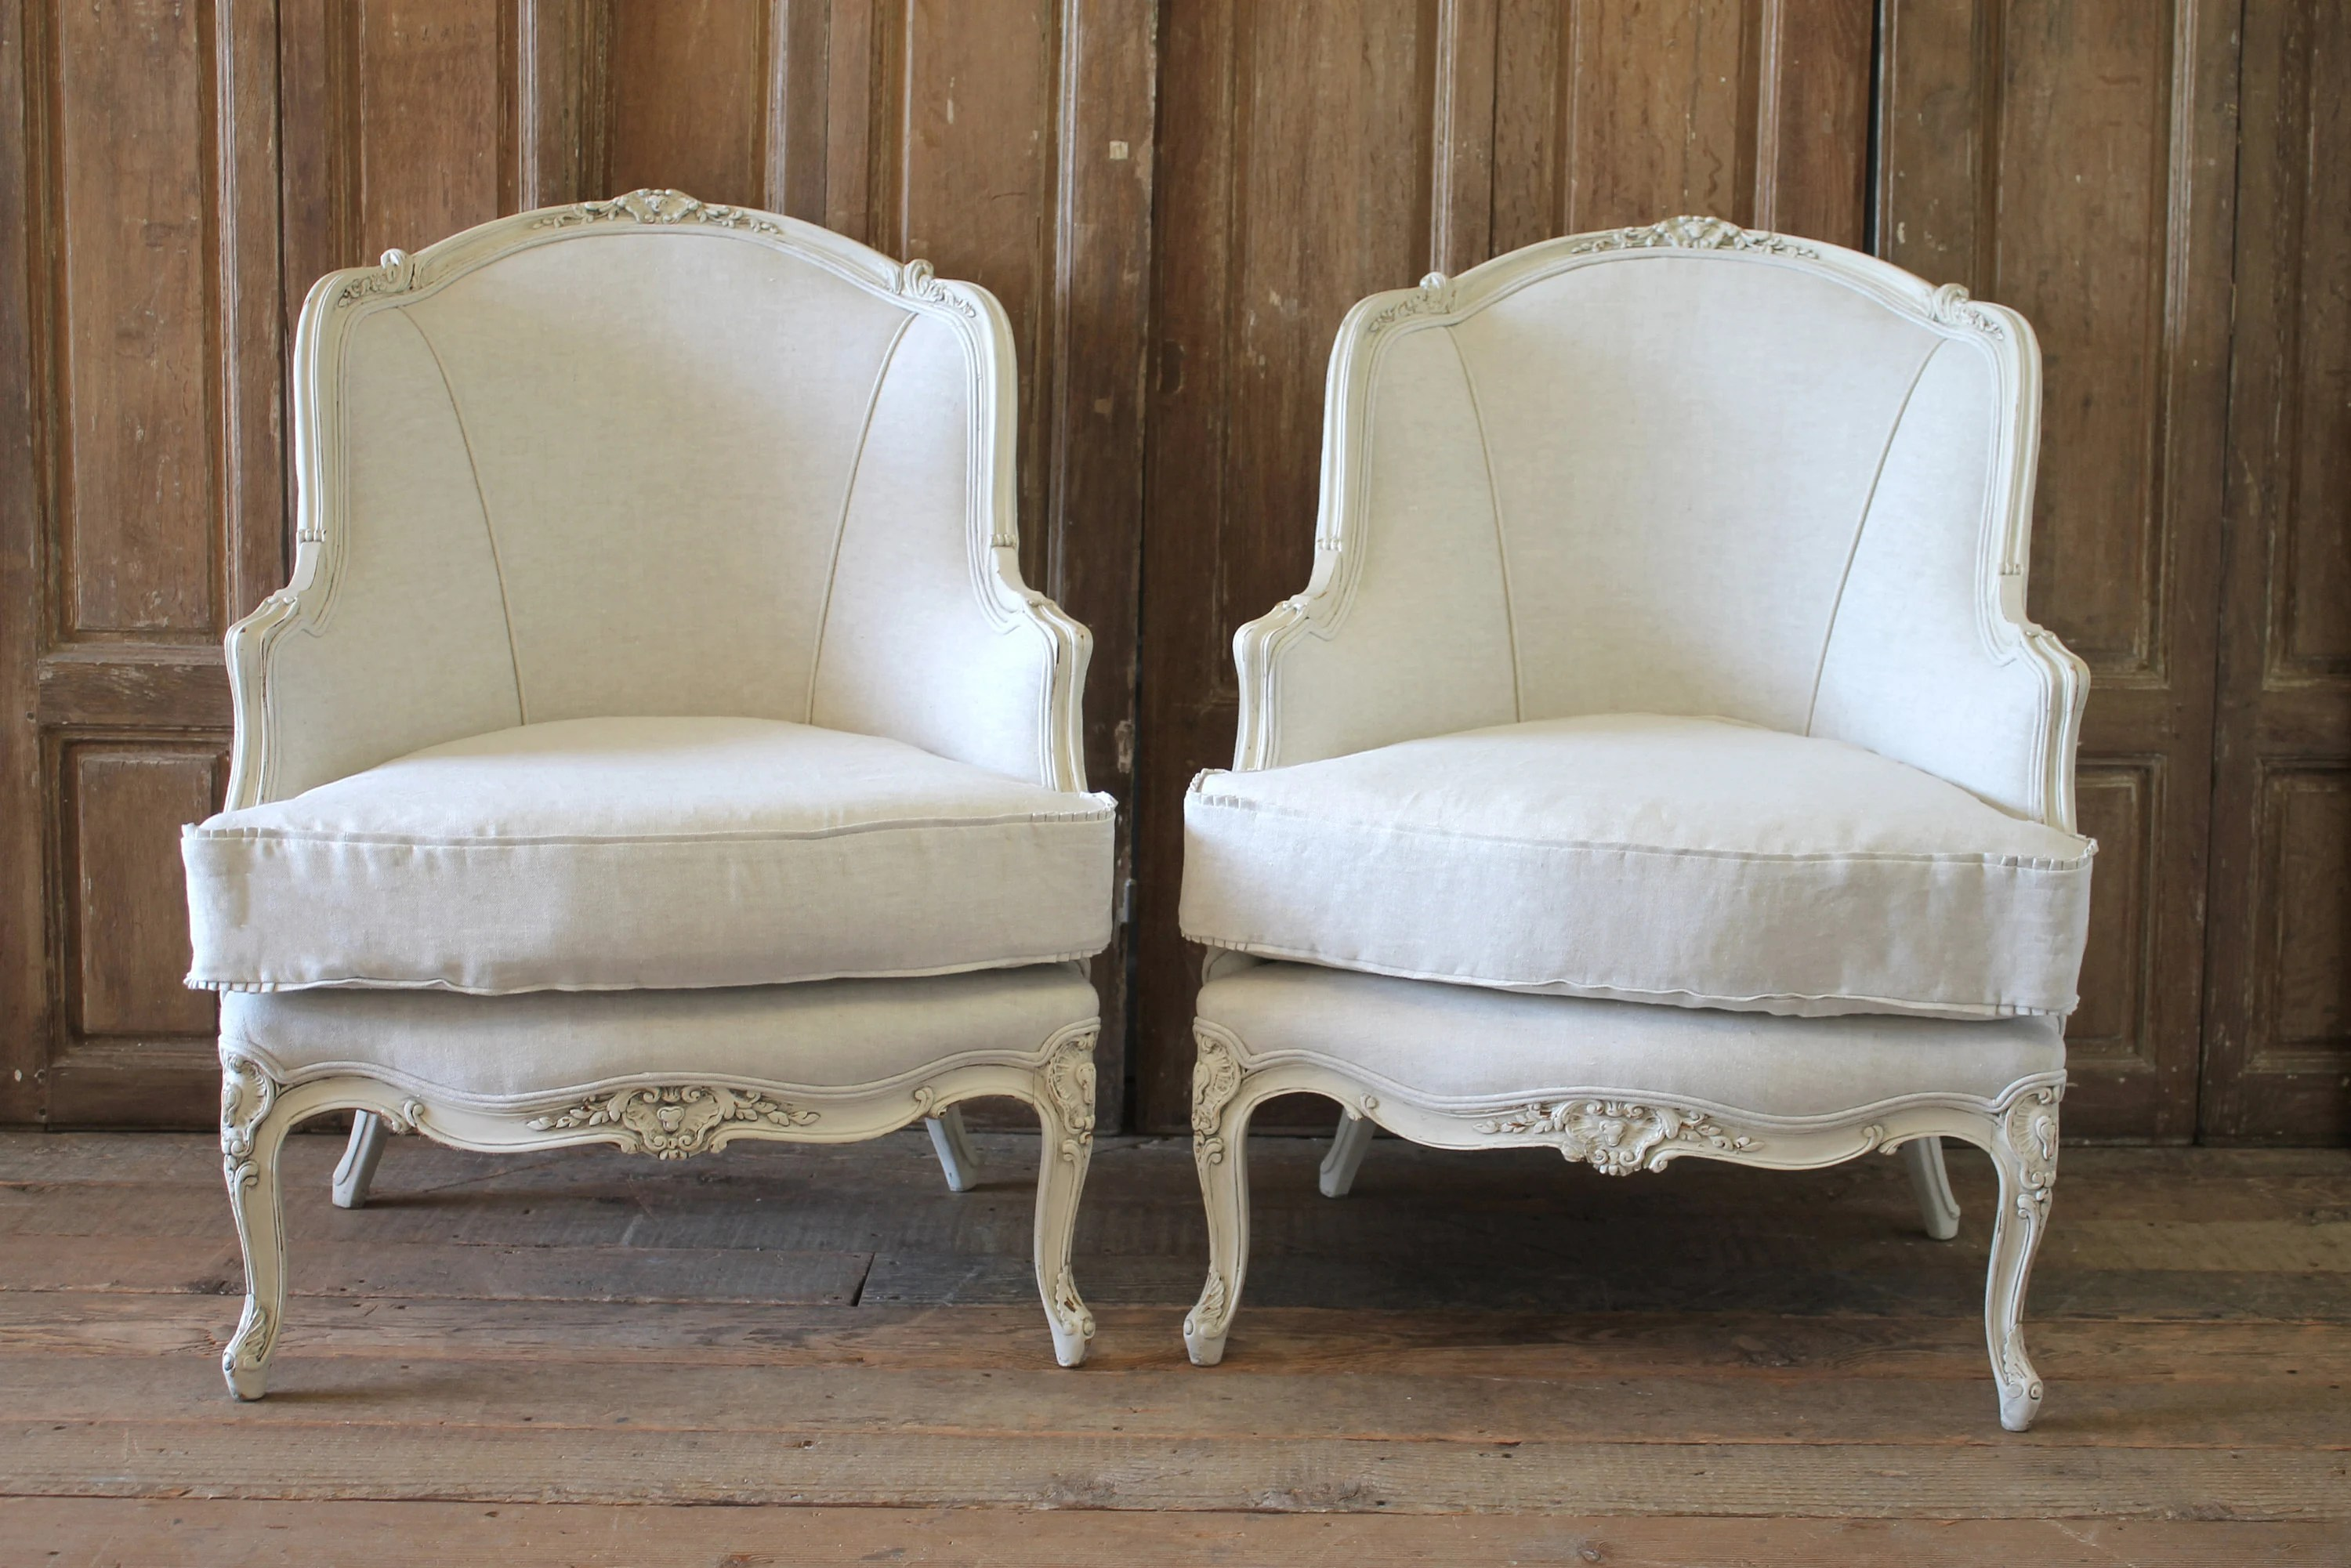 bergere chairs for sale wholesale party tables and etsy pair of painted white louis xv style linen upholstered